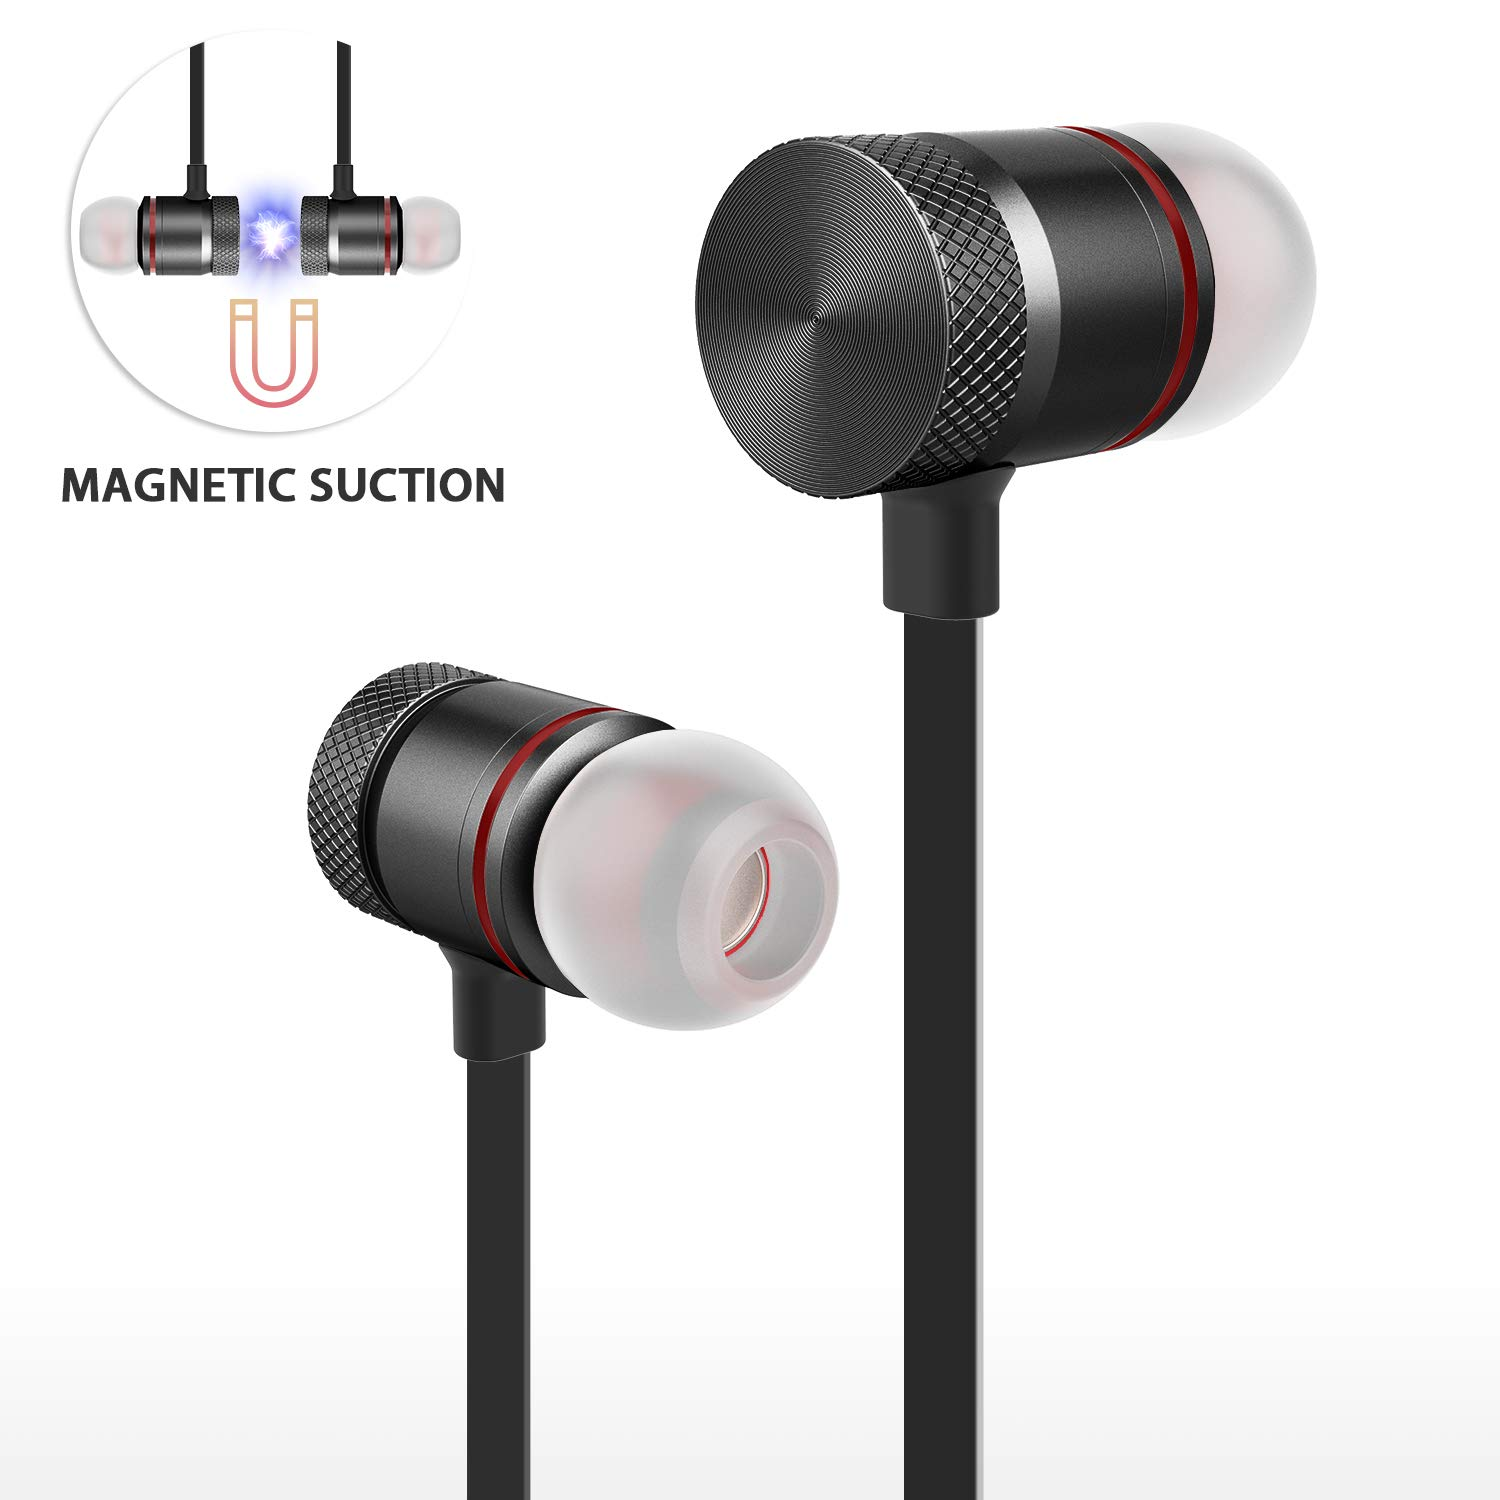 Bluetooth Headphones V 5.0, Ownta Wireless Earbuds with Multi-Function Charging Case,TWS Sports Headsets CVC 8.0 Built in Mic for iPhone Xs X 8 7 6 Plus/Samsung Android Smartphone/iPad